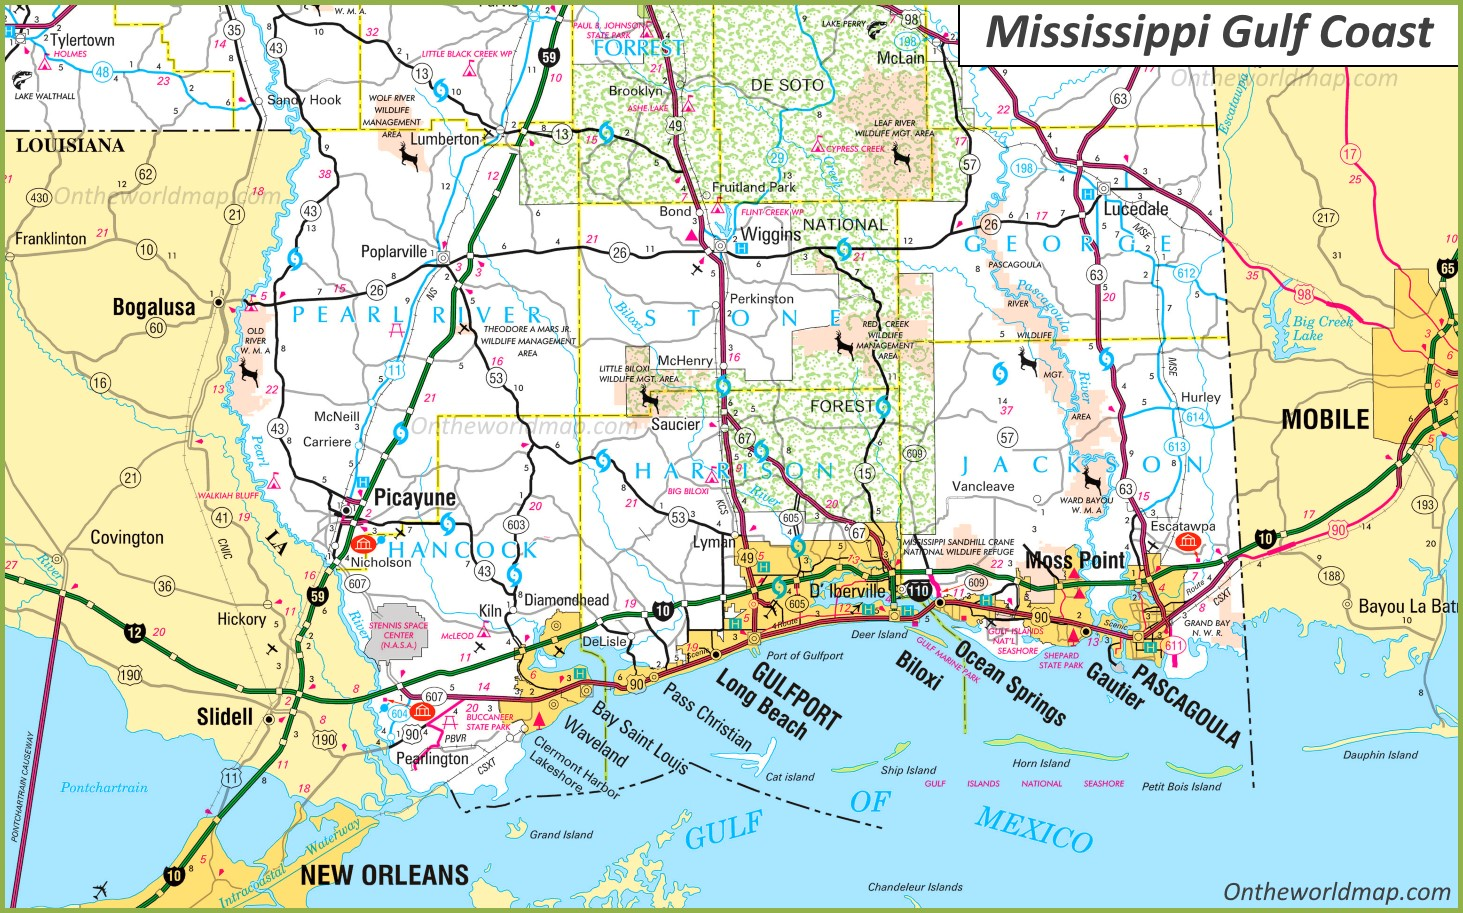 map of mississippi gulf coast cities Map Of Mississippi Gulf Coast map of mississippi gulf coast cities